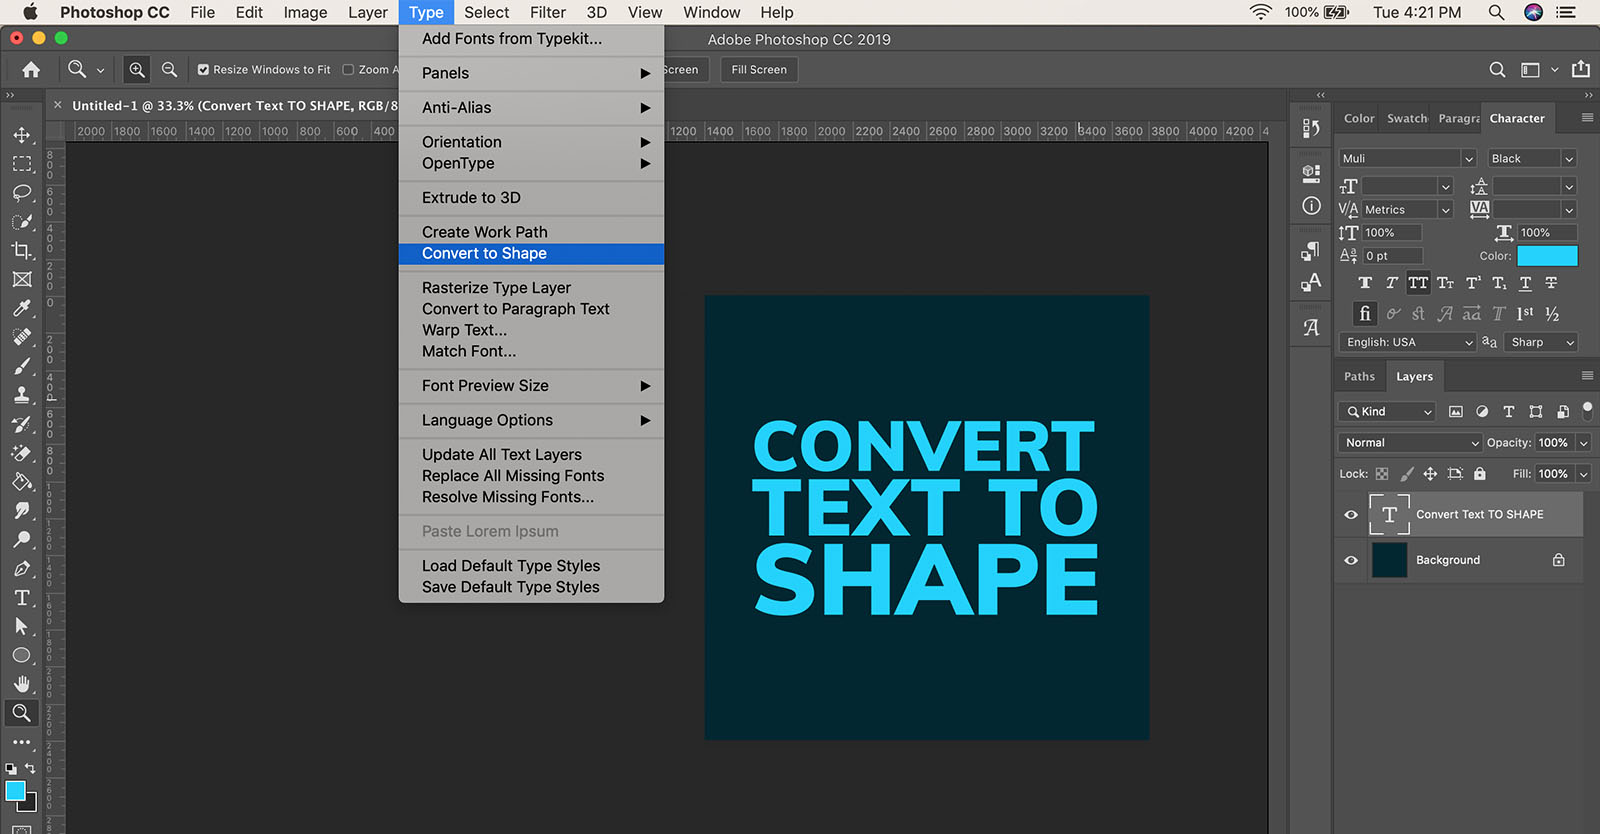 How to convert text to shape in Photoshop